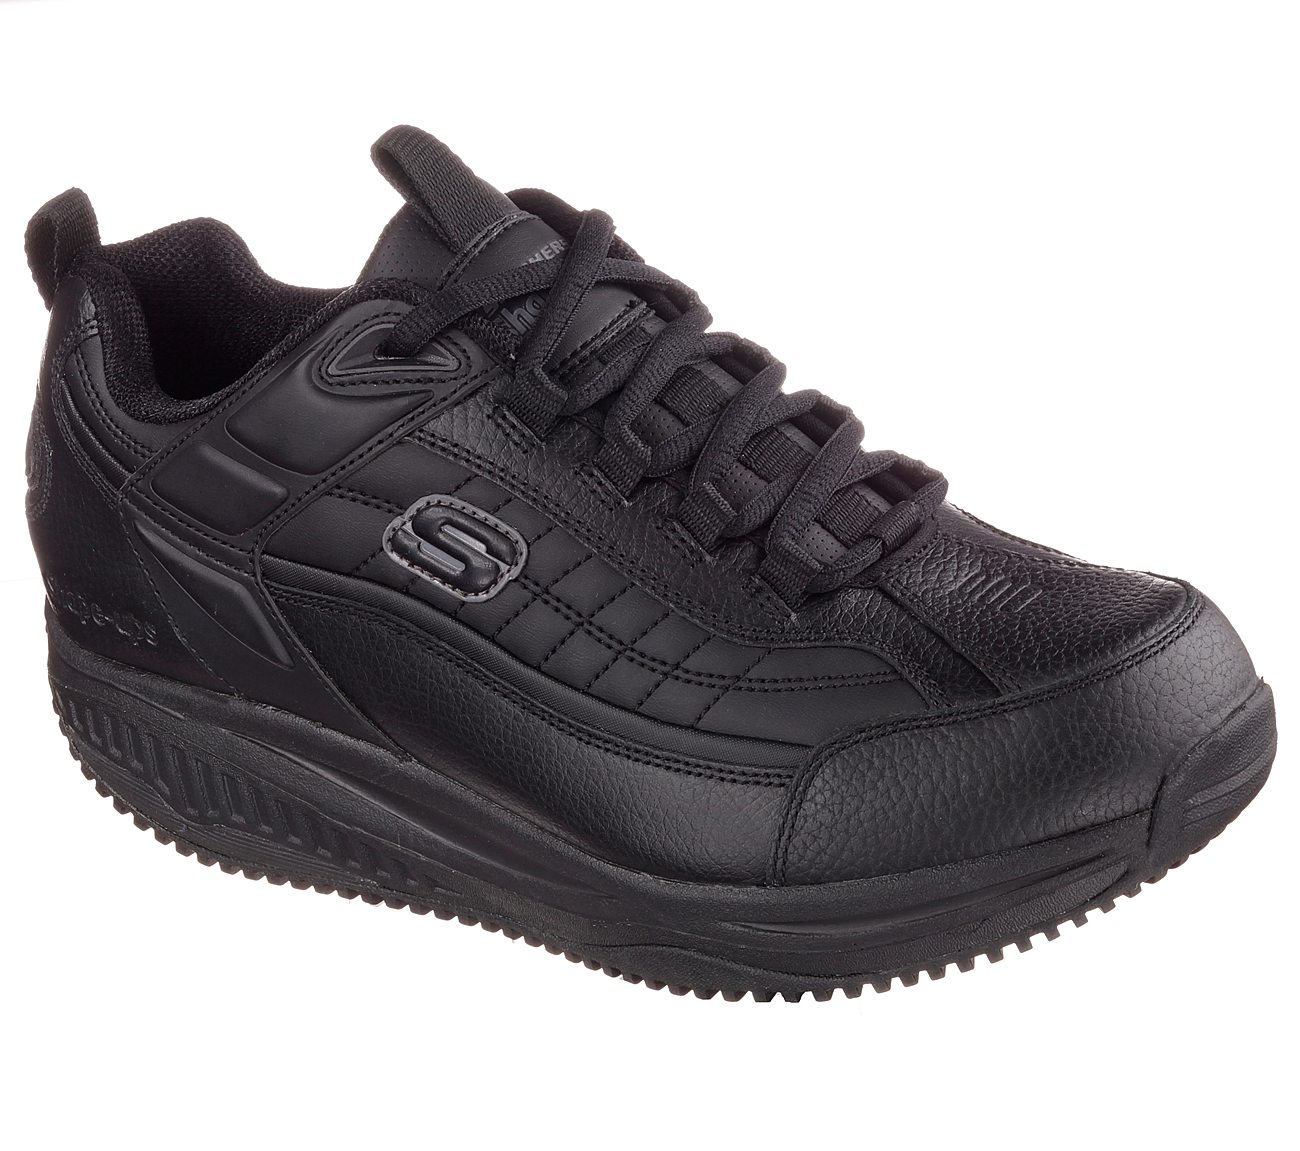 skechers shape ups mens brown